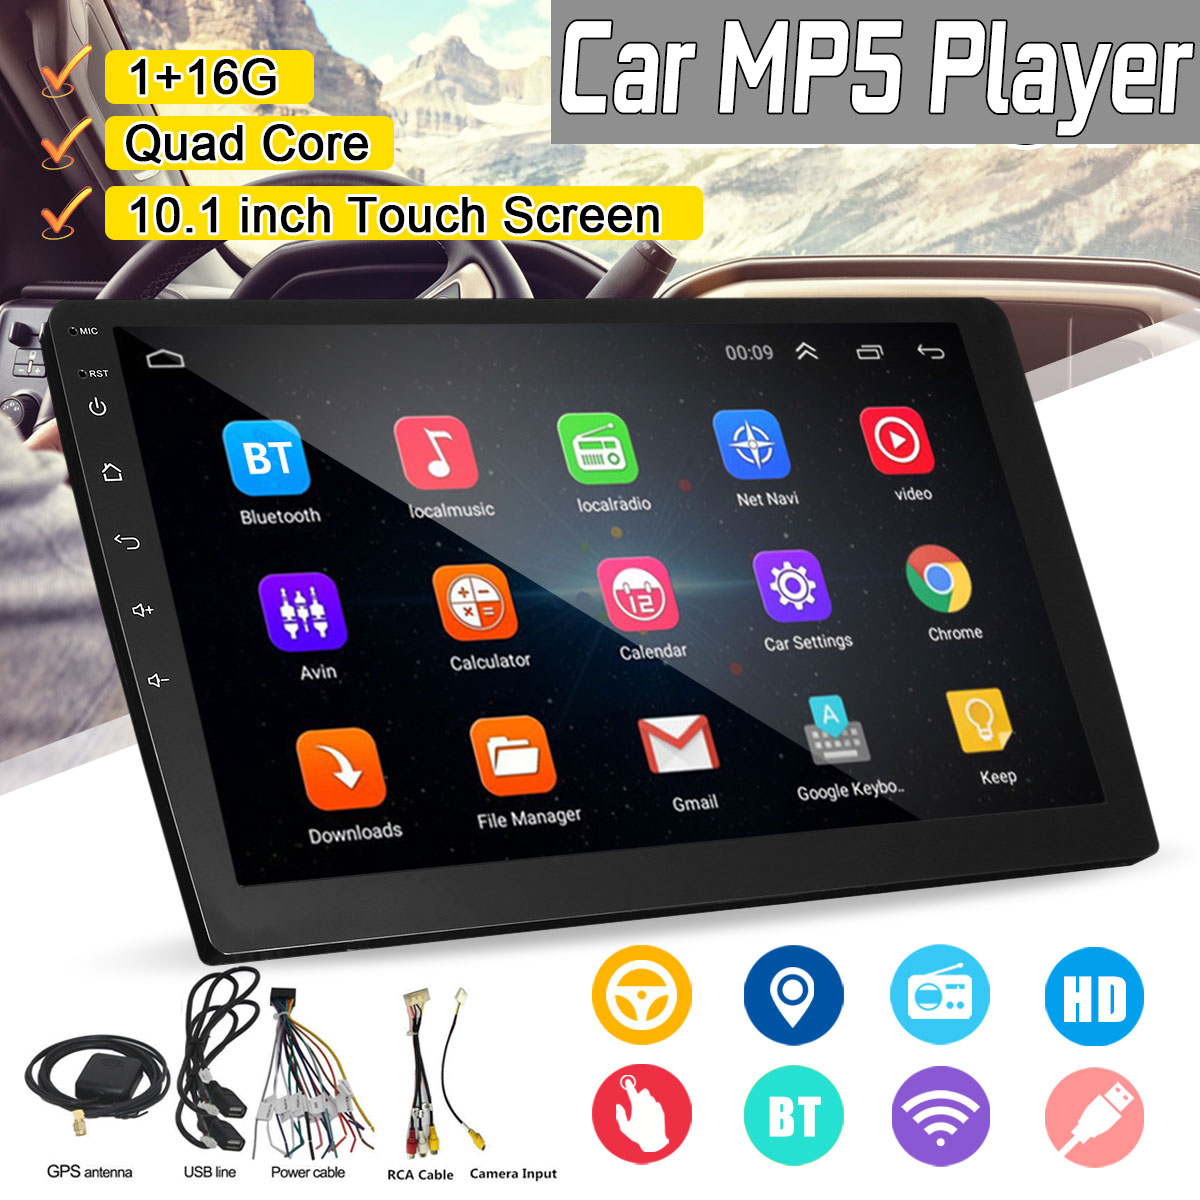 Car Multimedia Player 10.1 2 DIN Car Stereo 2DIN bluetooth DAB WIFI GPS Nav Quad Core Touchable Radio Video MP5 Player 1+16GCar Multimedia Player 10.1 2 DIN Car Stereo 2DIN bluetooth DAB WIFI GPS Nav Quad Core Touchable Radio Video MP5 Player 1+16G